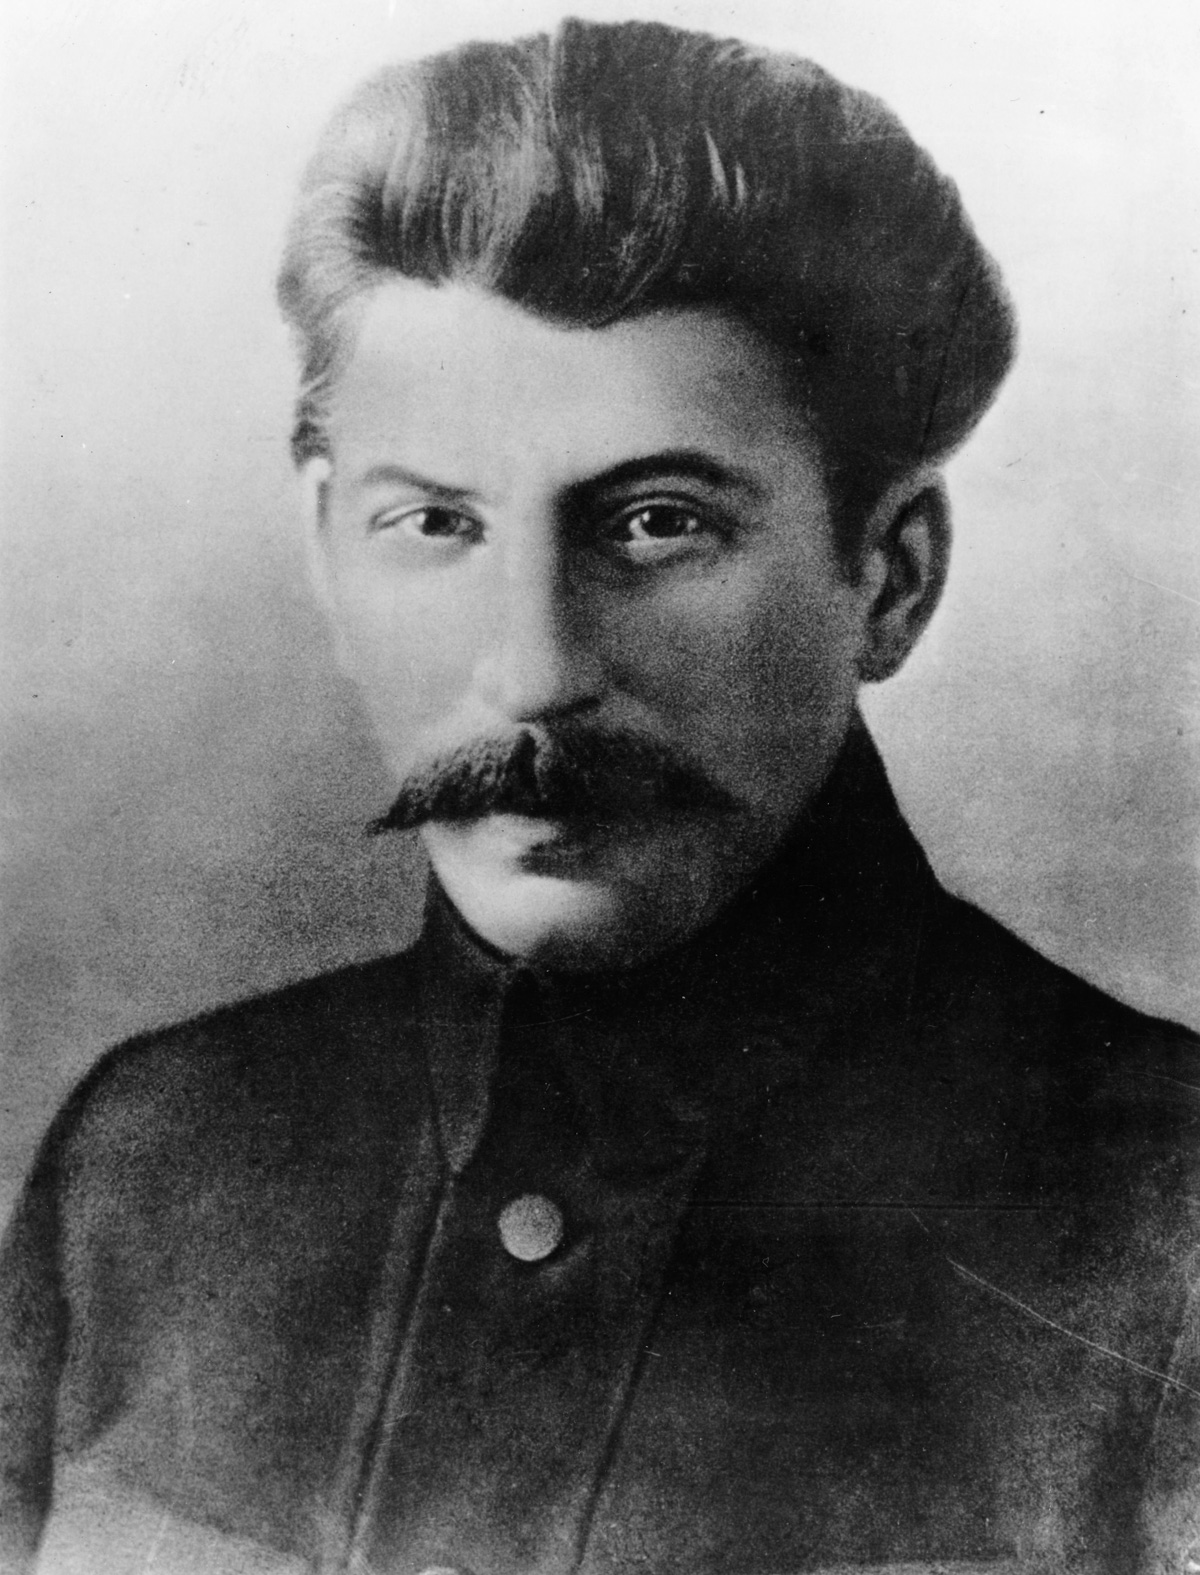 josef stalin 2 misattributed 3 quotes about stalin 4 external links  as quoted in joseph  stalin: dictator of the soviet union (2006) by brenda haugen, p 11 you know.